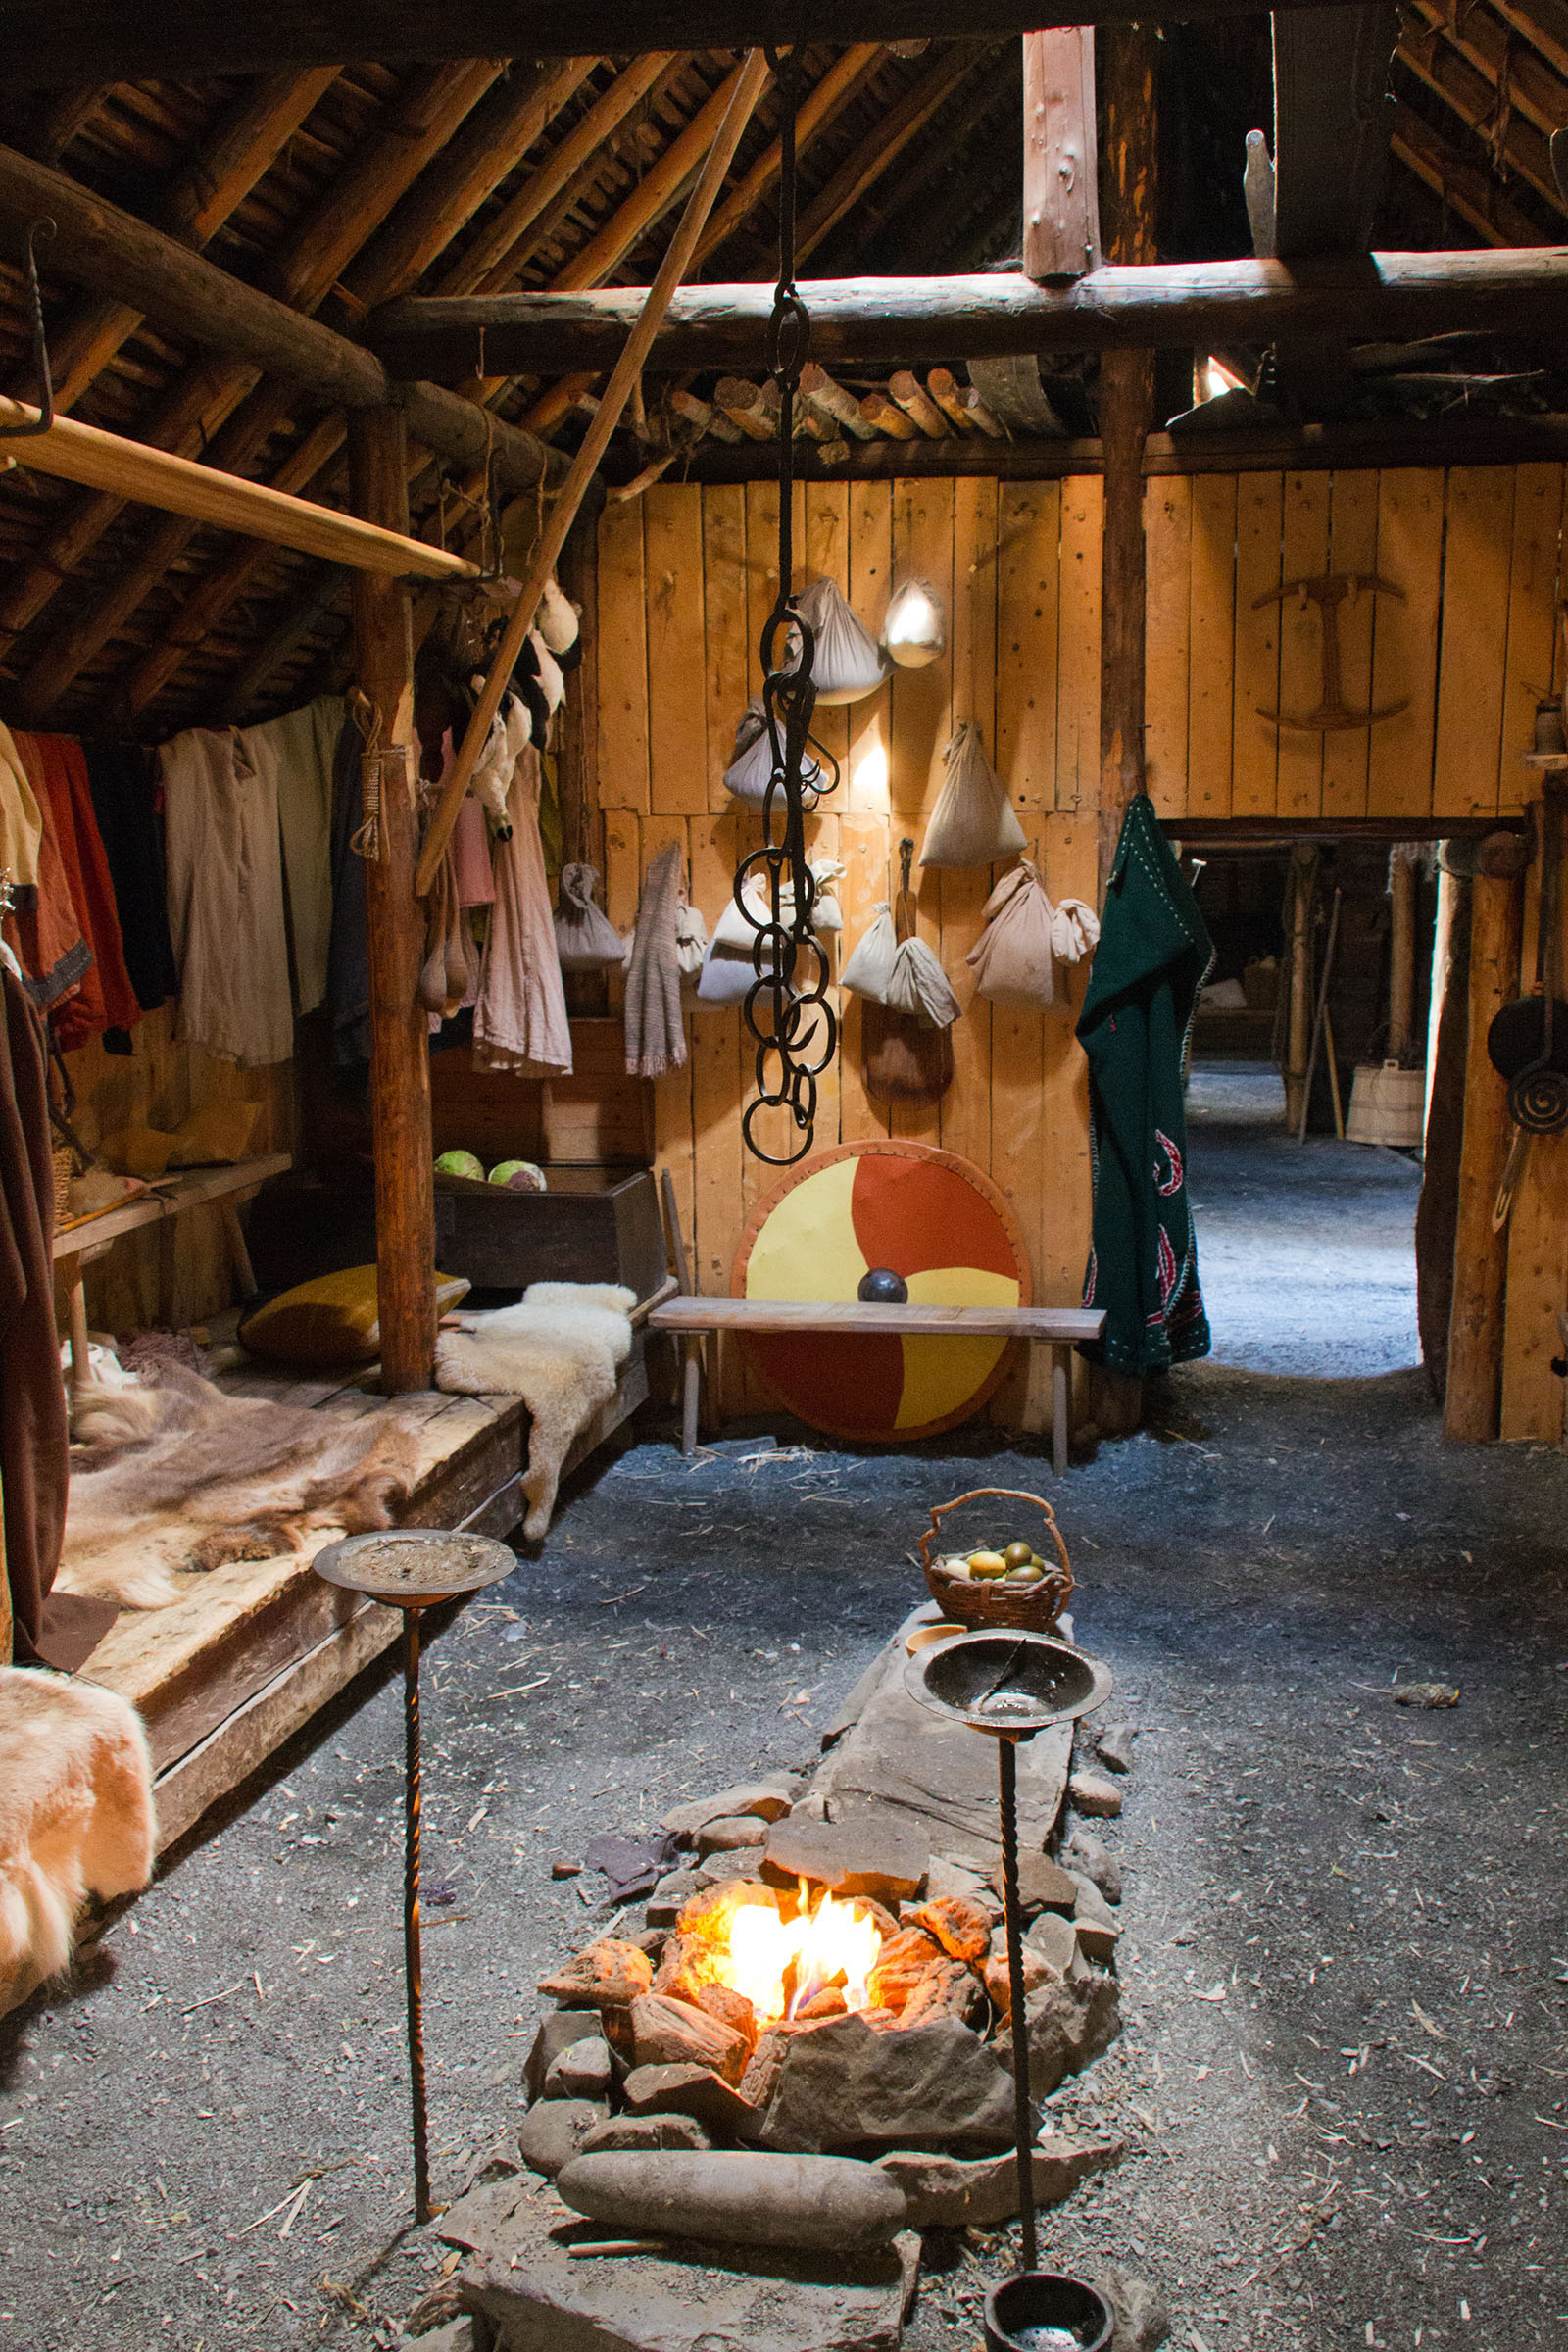 Viking longhouse - interior/exterior.